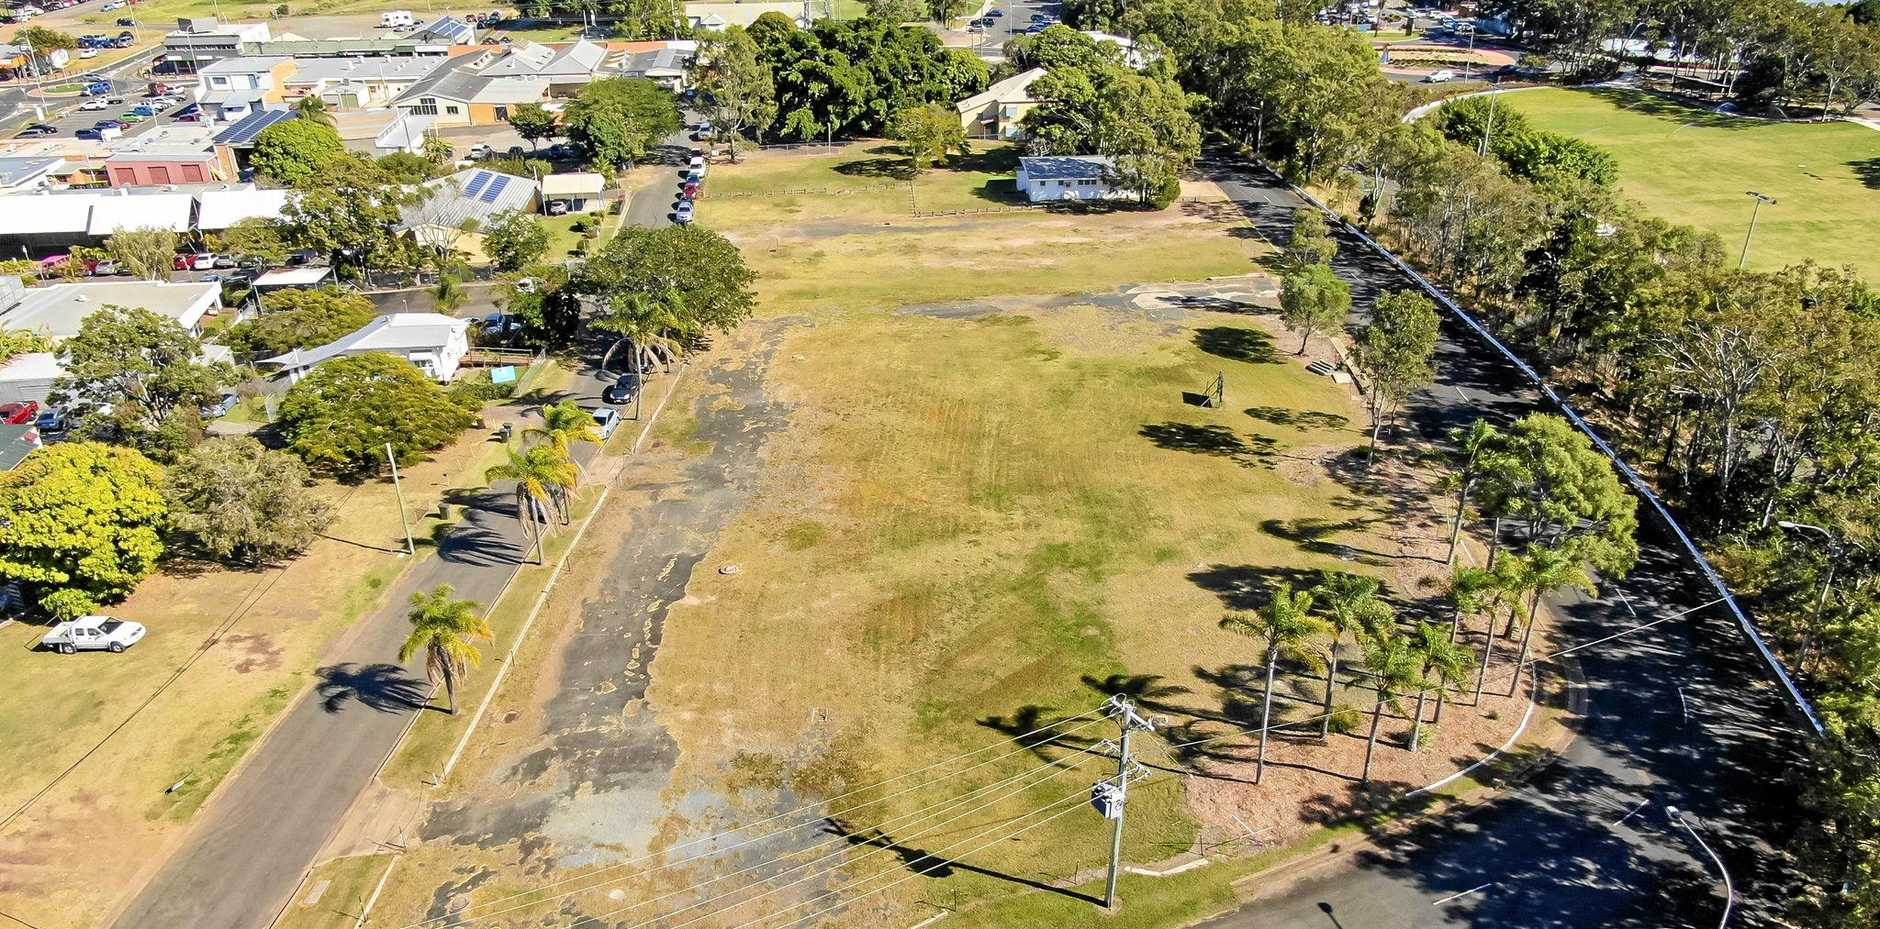 The site of Fraser Coast Regional Council's new administration centre and possible hotel.